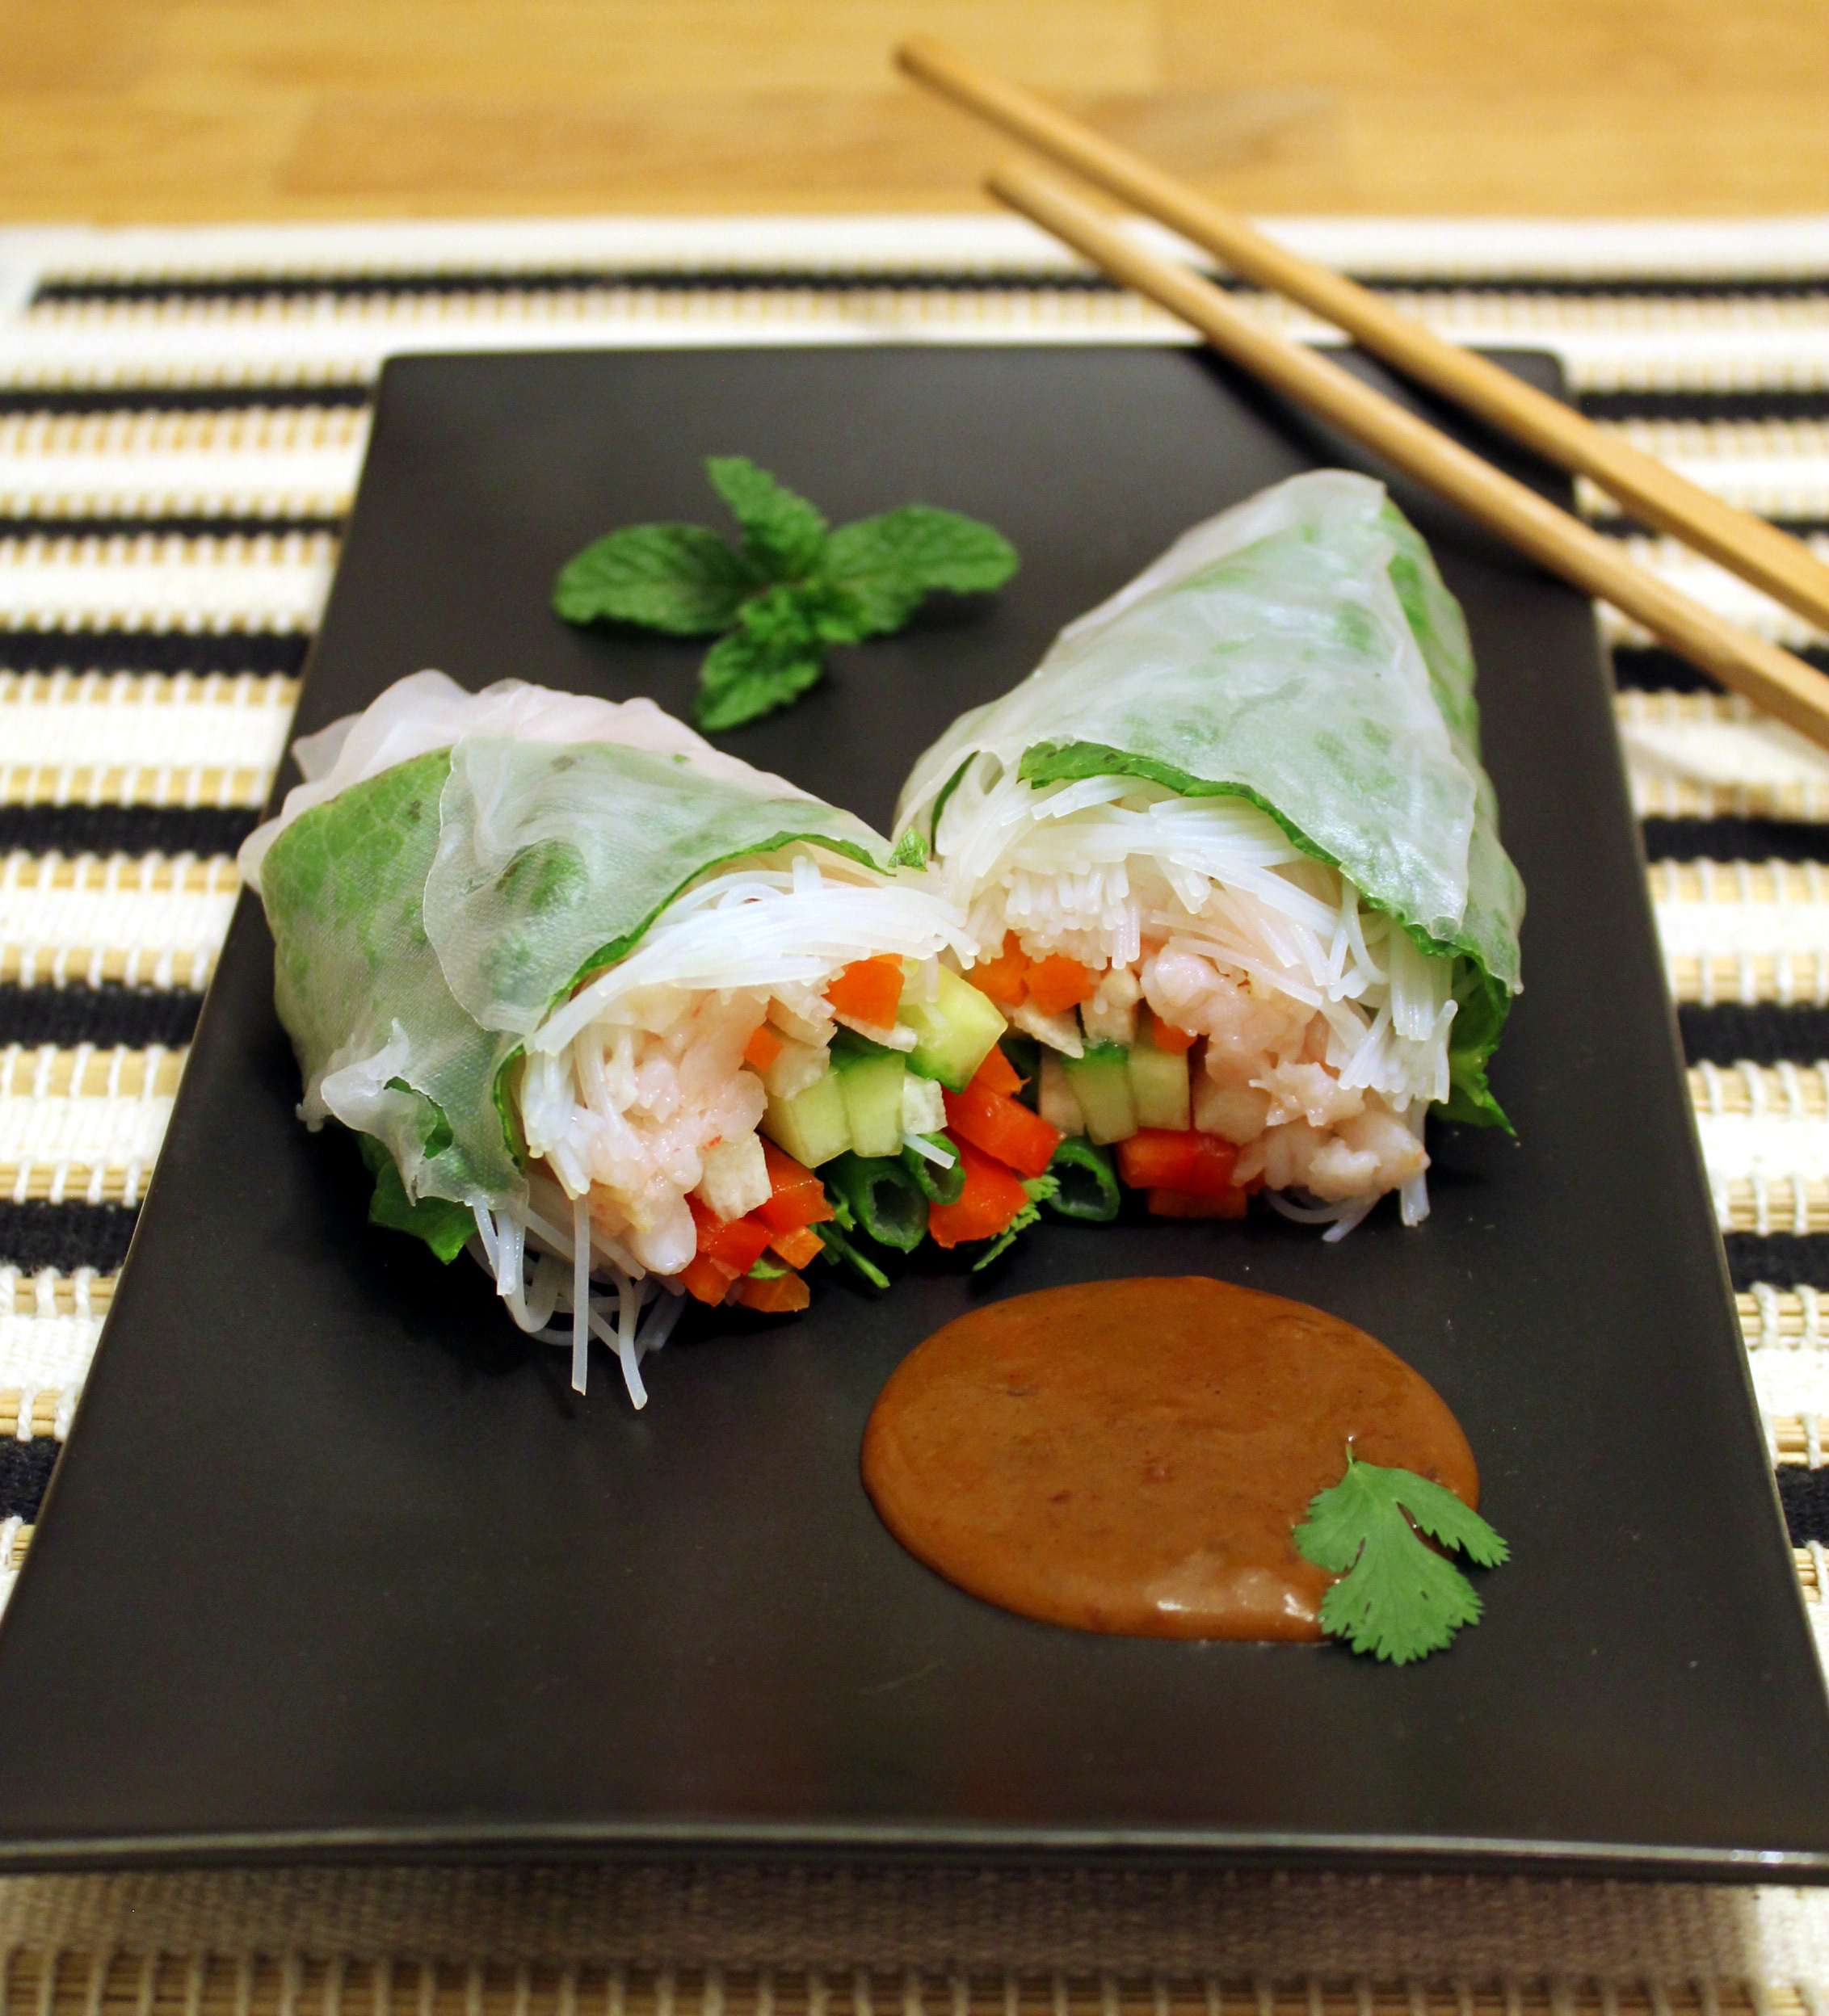 Shrimp and Vegetable Spring Rolls with a Spicy Peanut Sauce